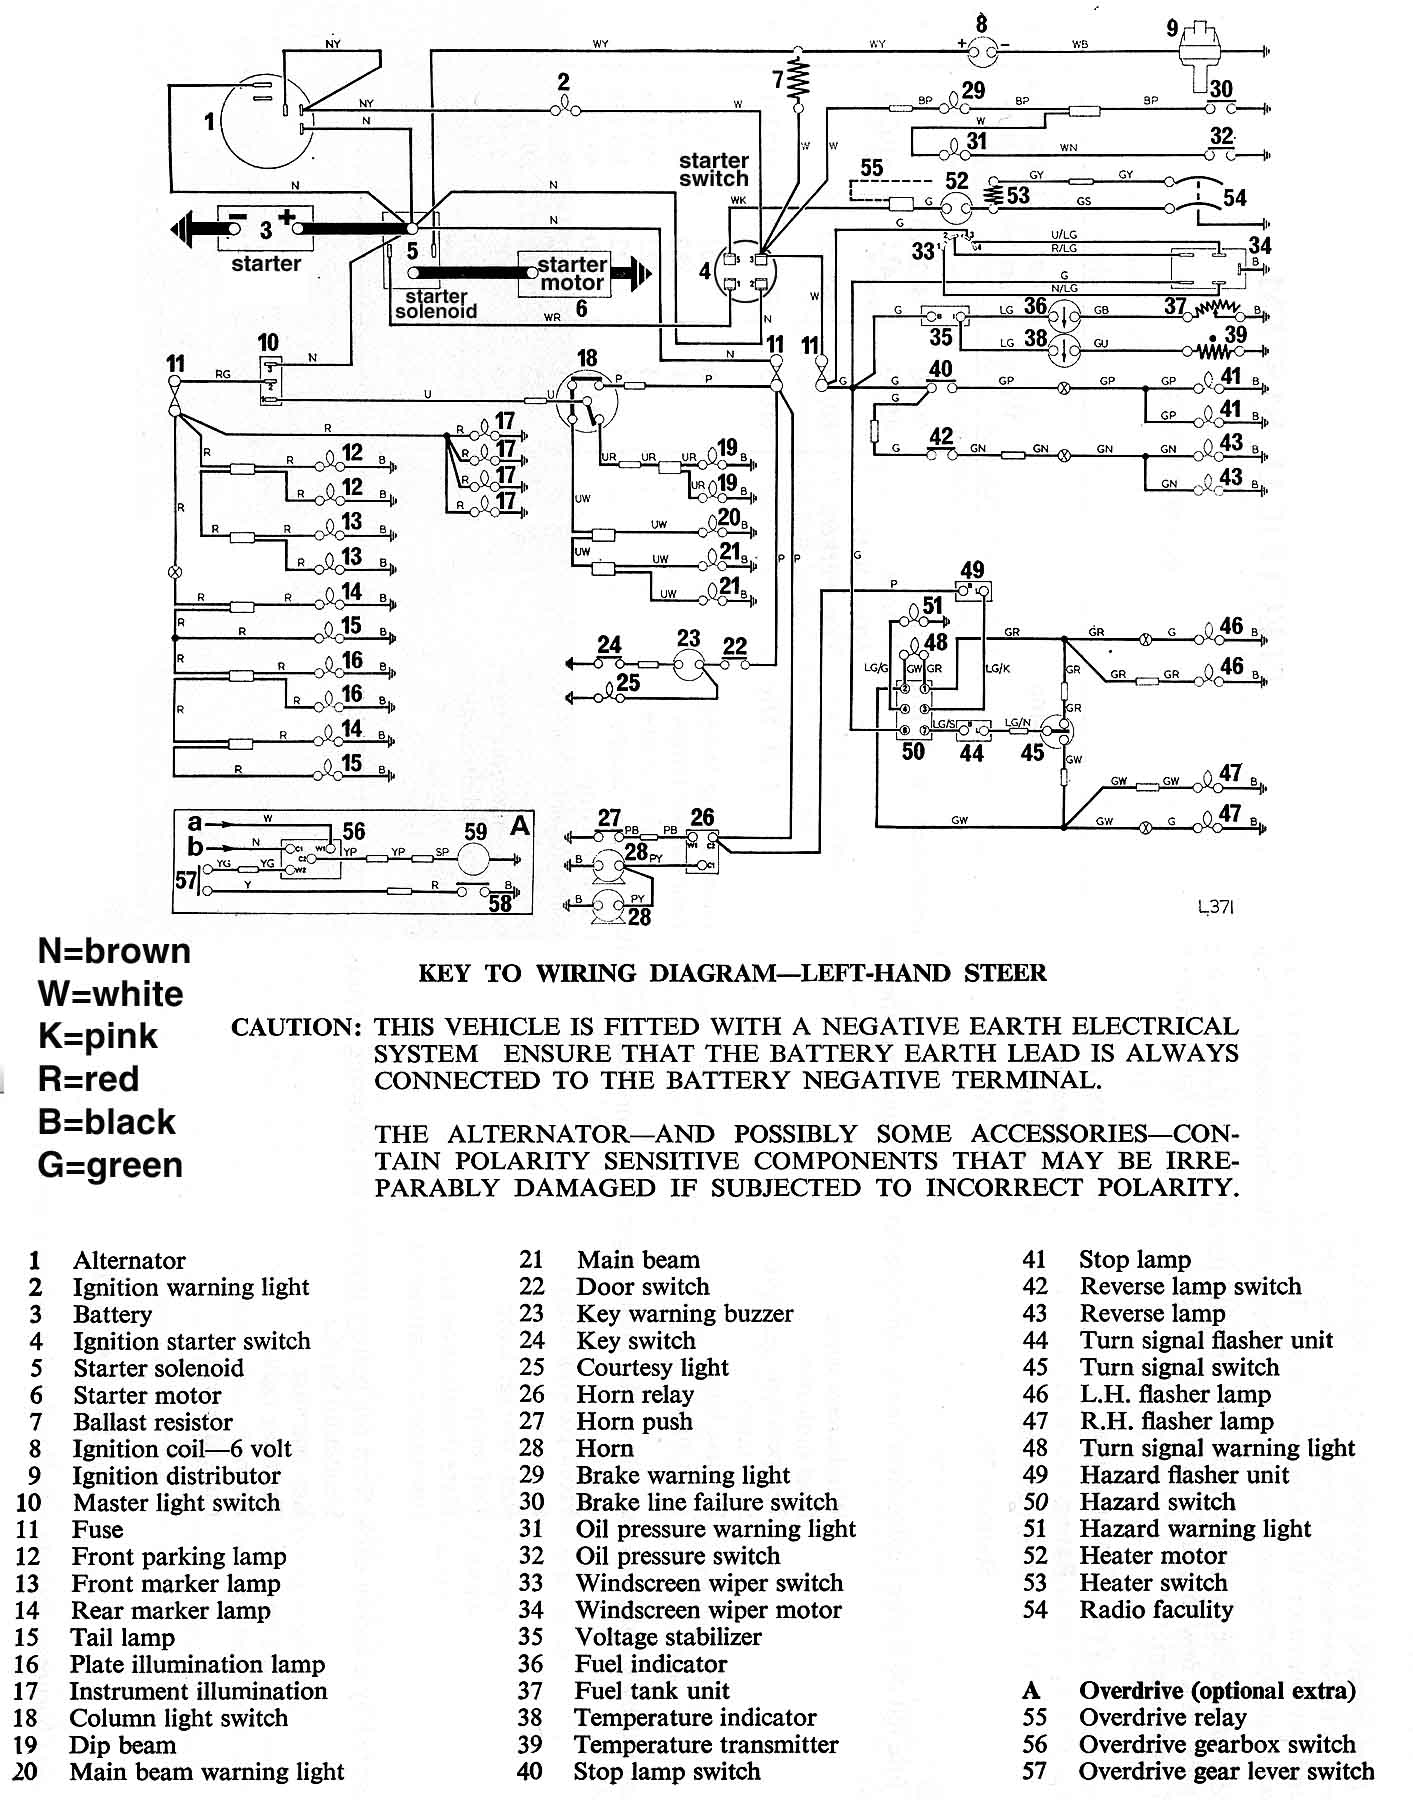 MKIVwire mk4 wiring diagram mk4 tdi wiring diagram \u2022 wiring diagrams j  at soozxer.org